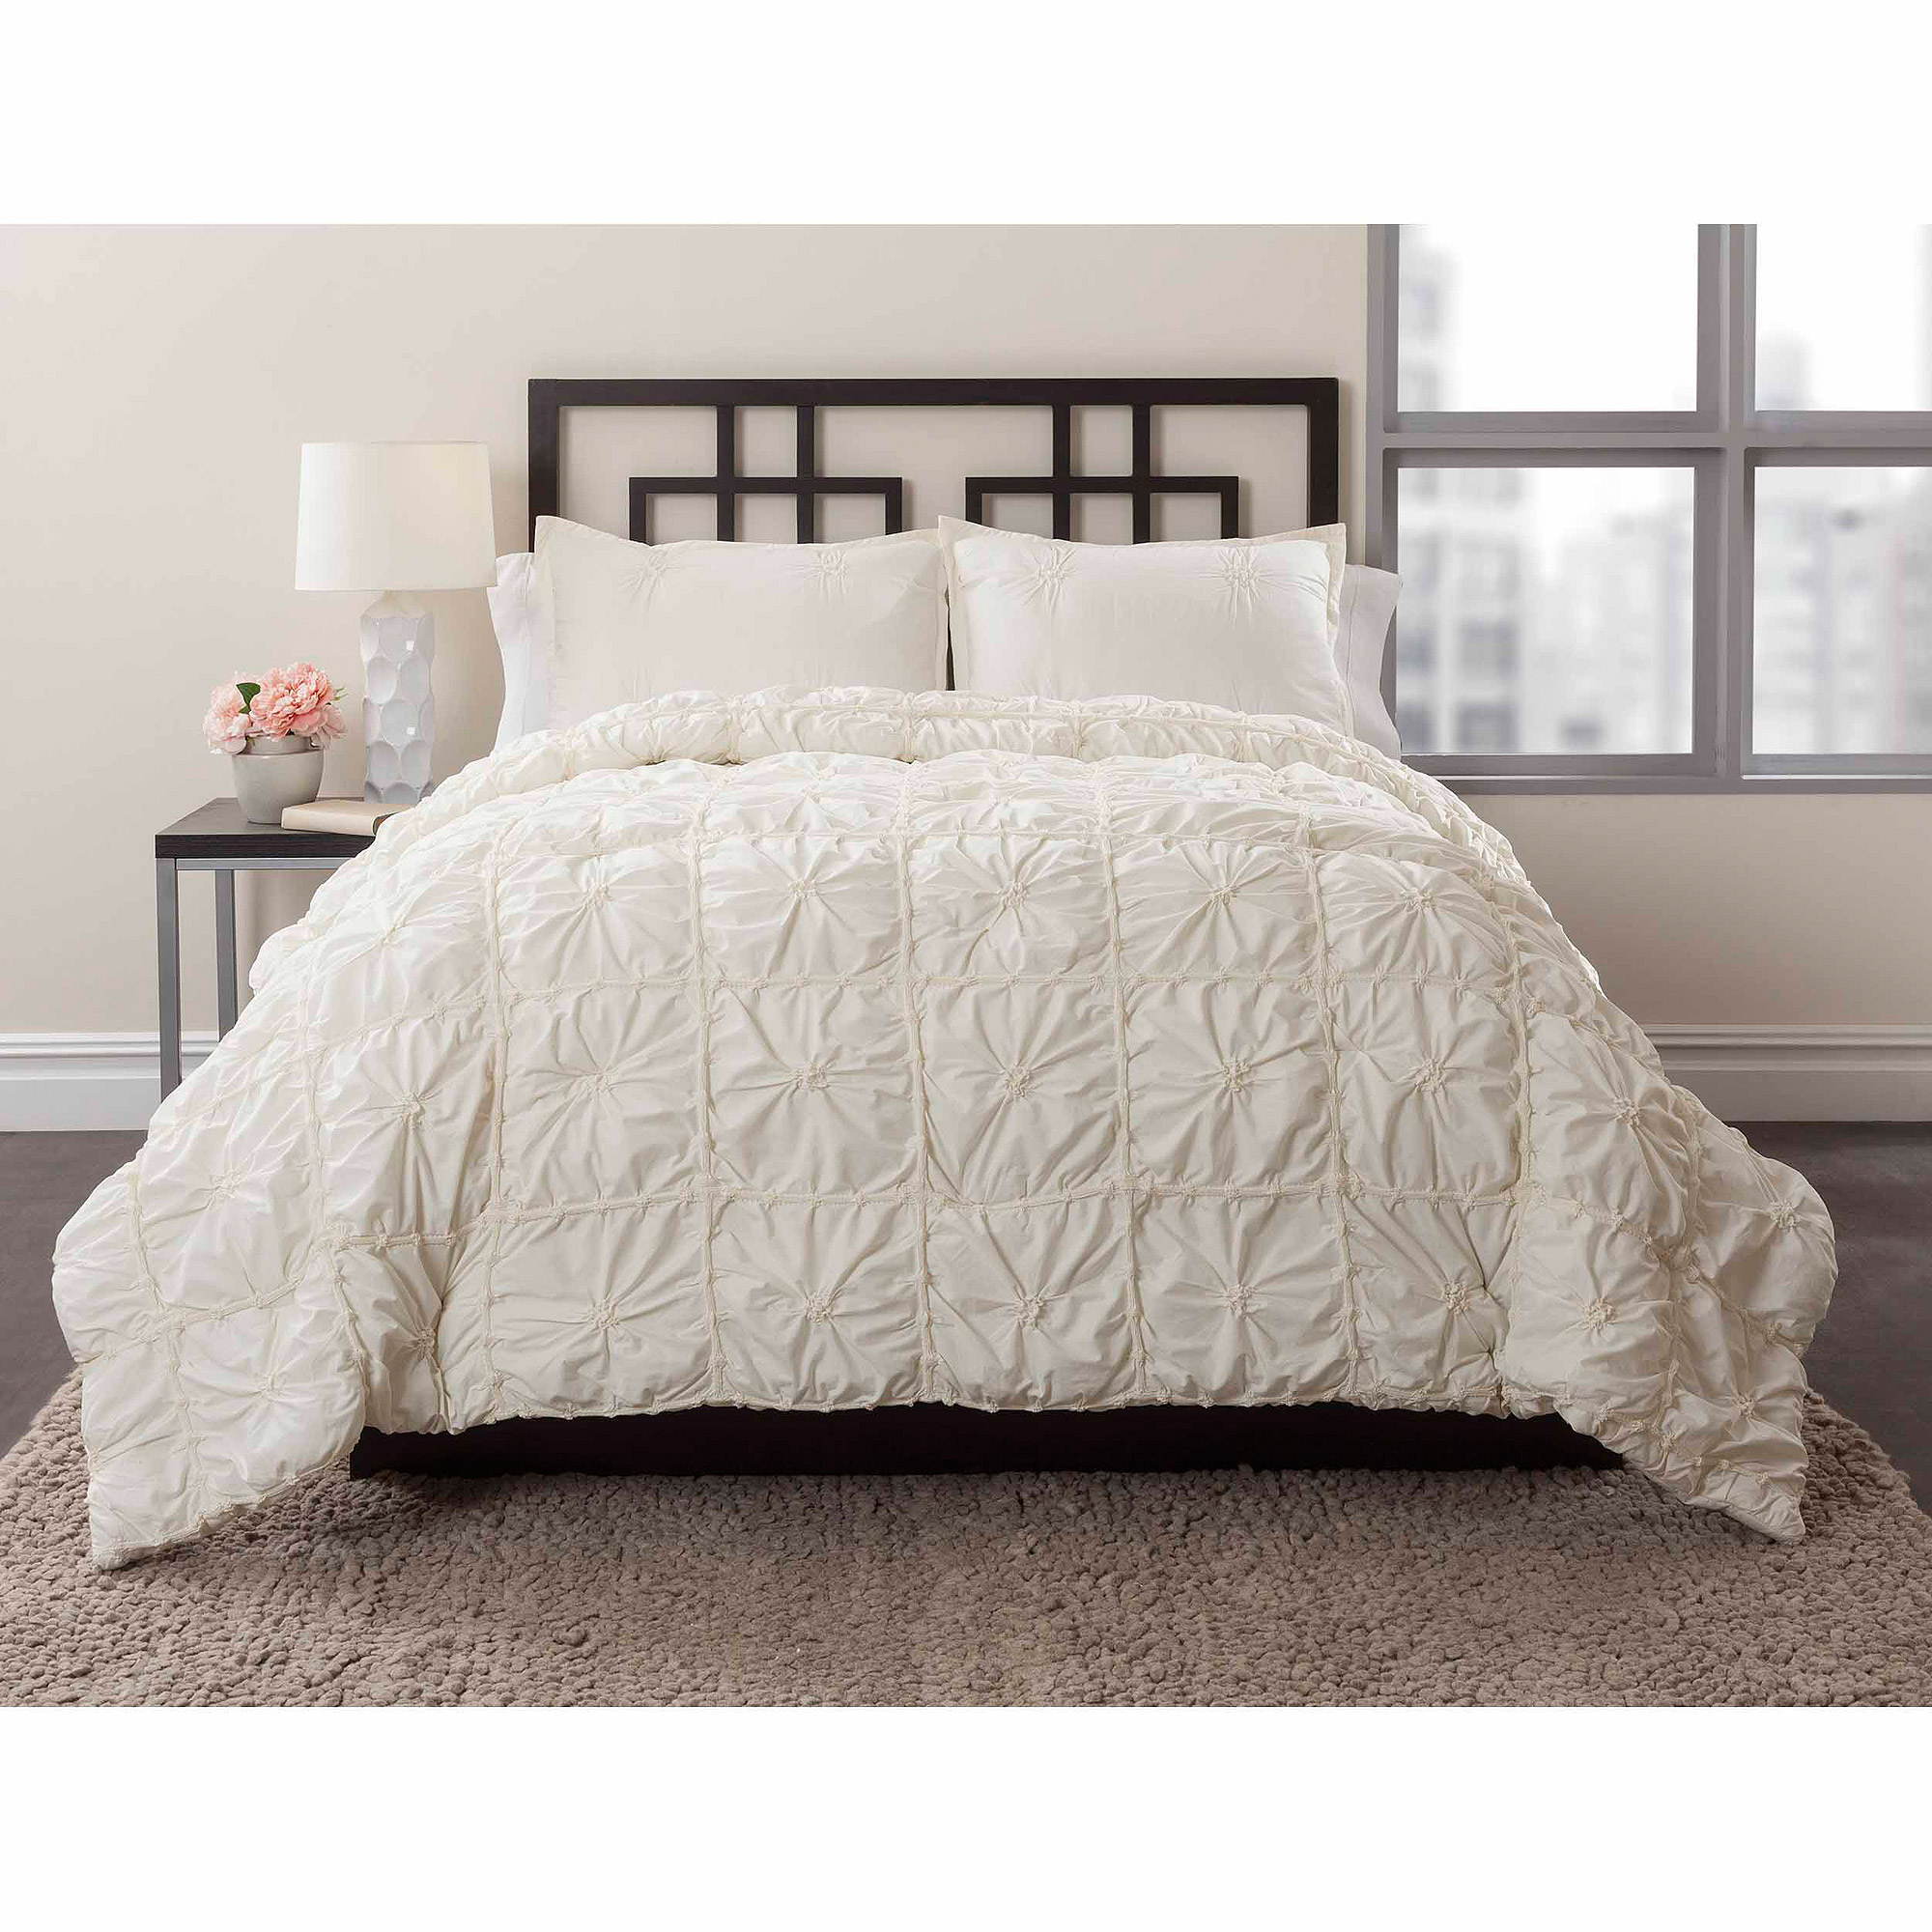 cover duvet signature bedding design ivory by set bedroom sets sd ashley barsheba